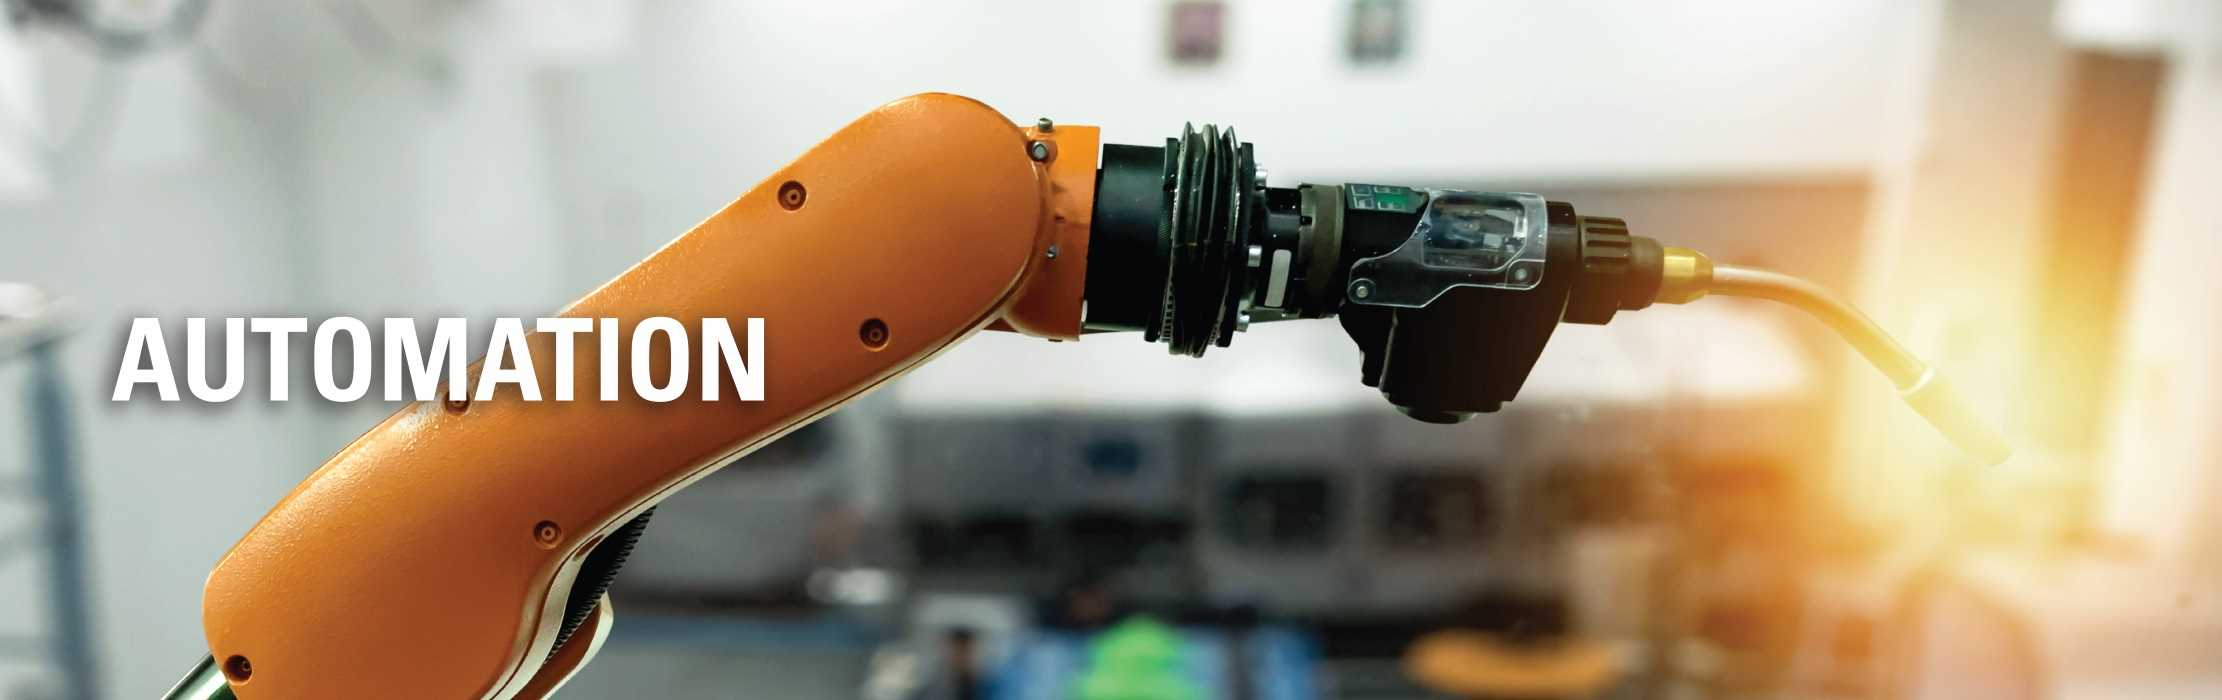 A robot arm with a torch: Automation.